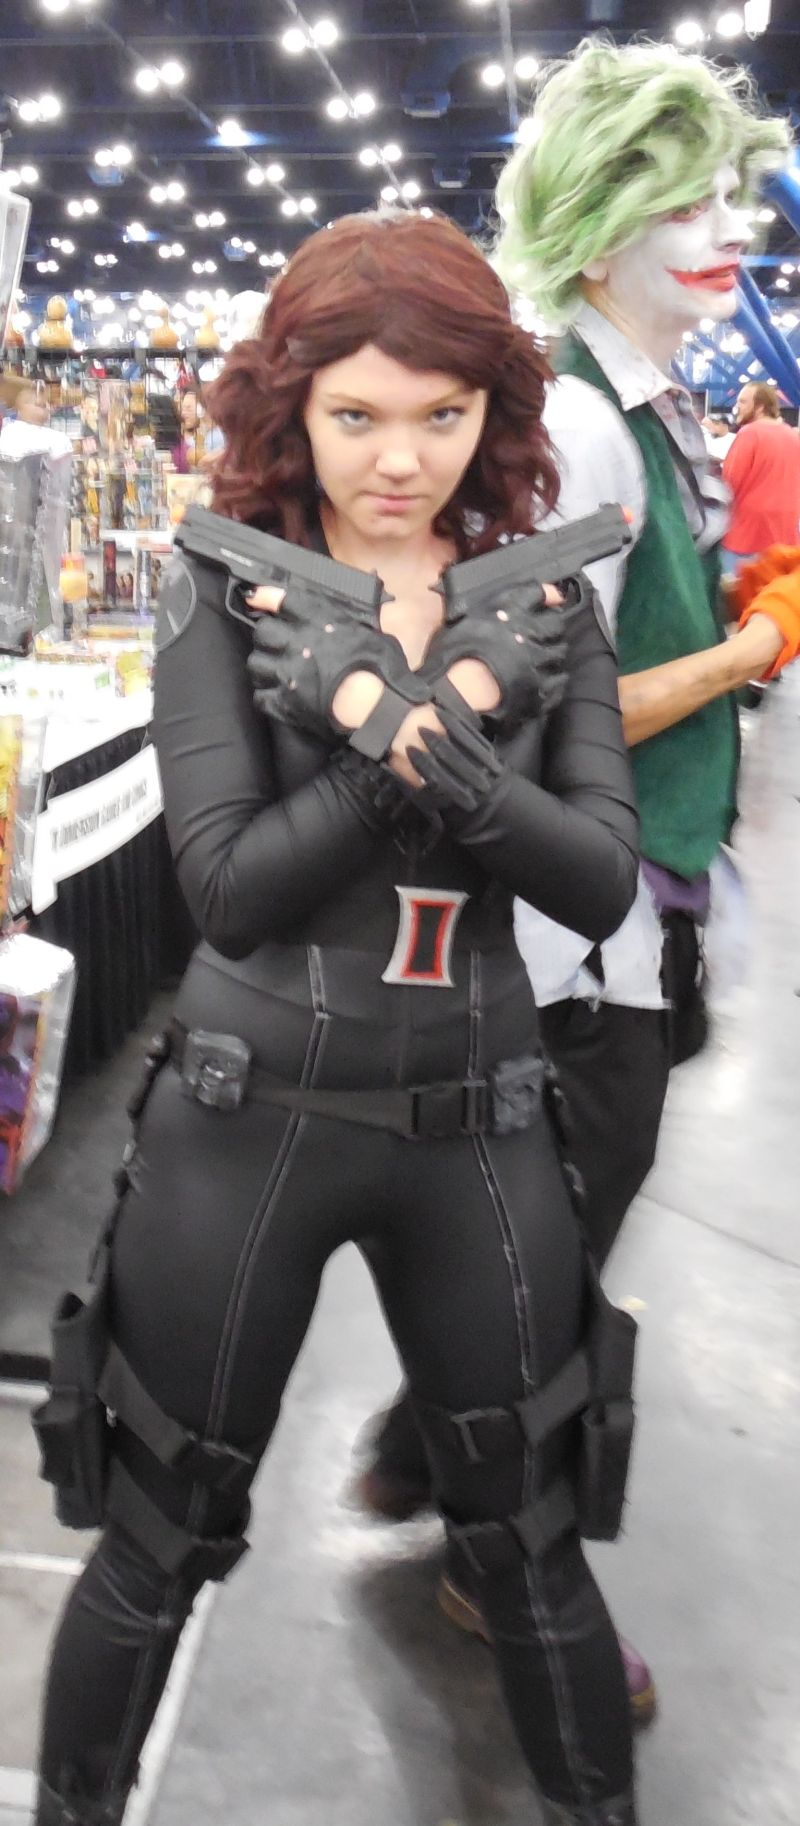 A Black Widow Fan!